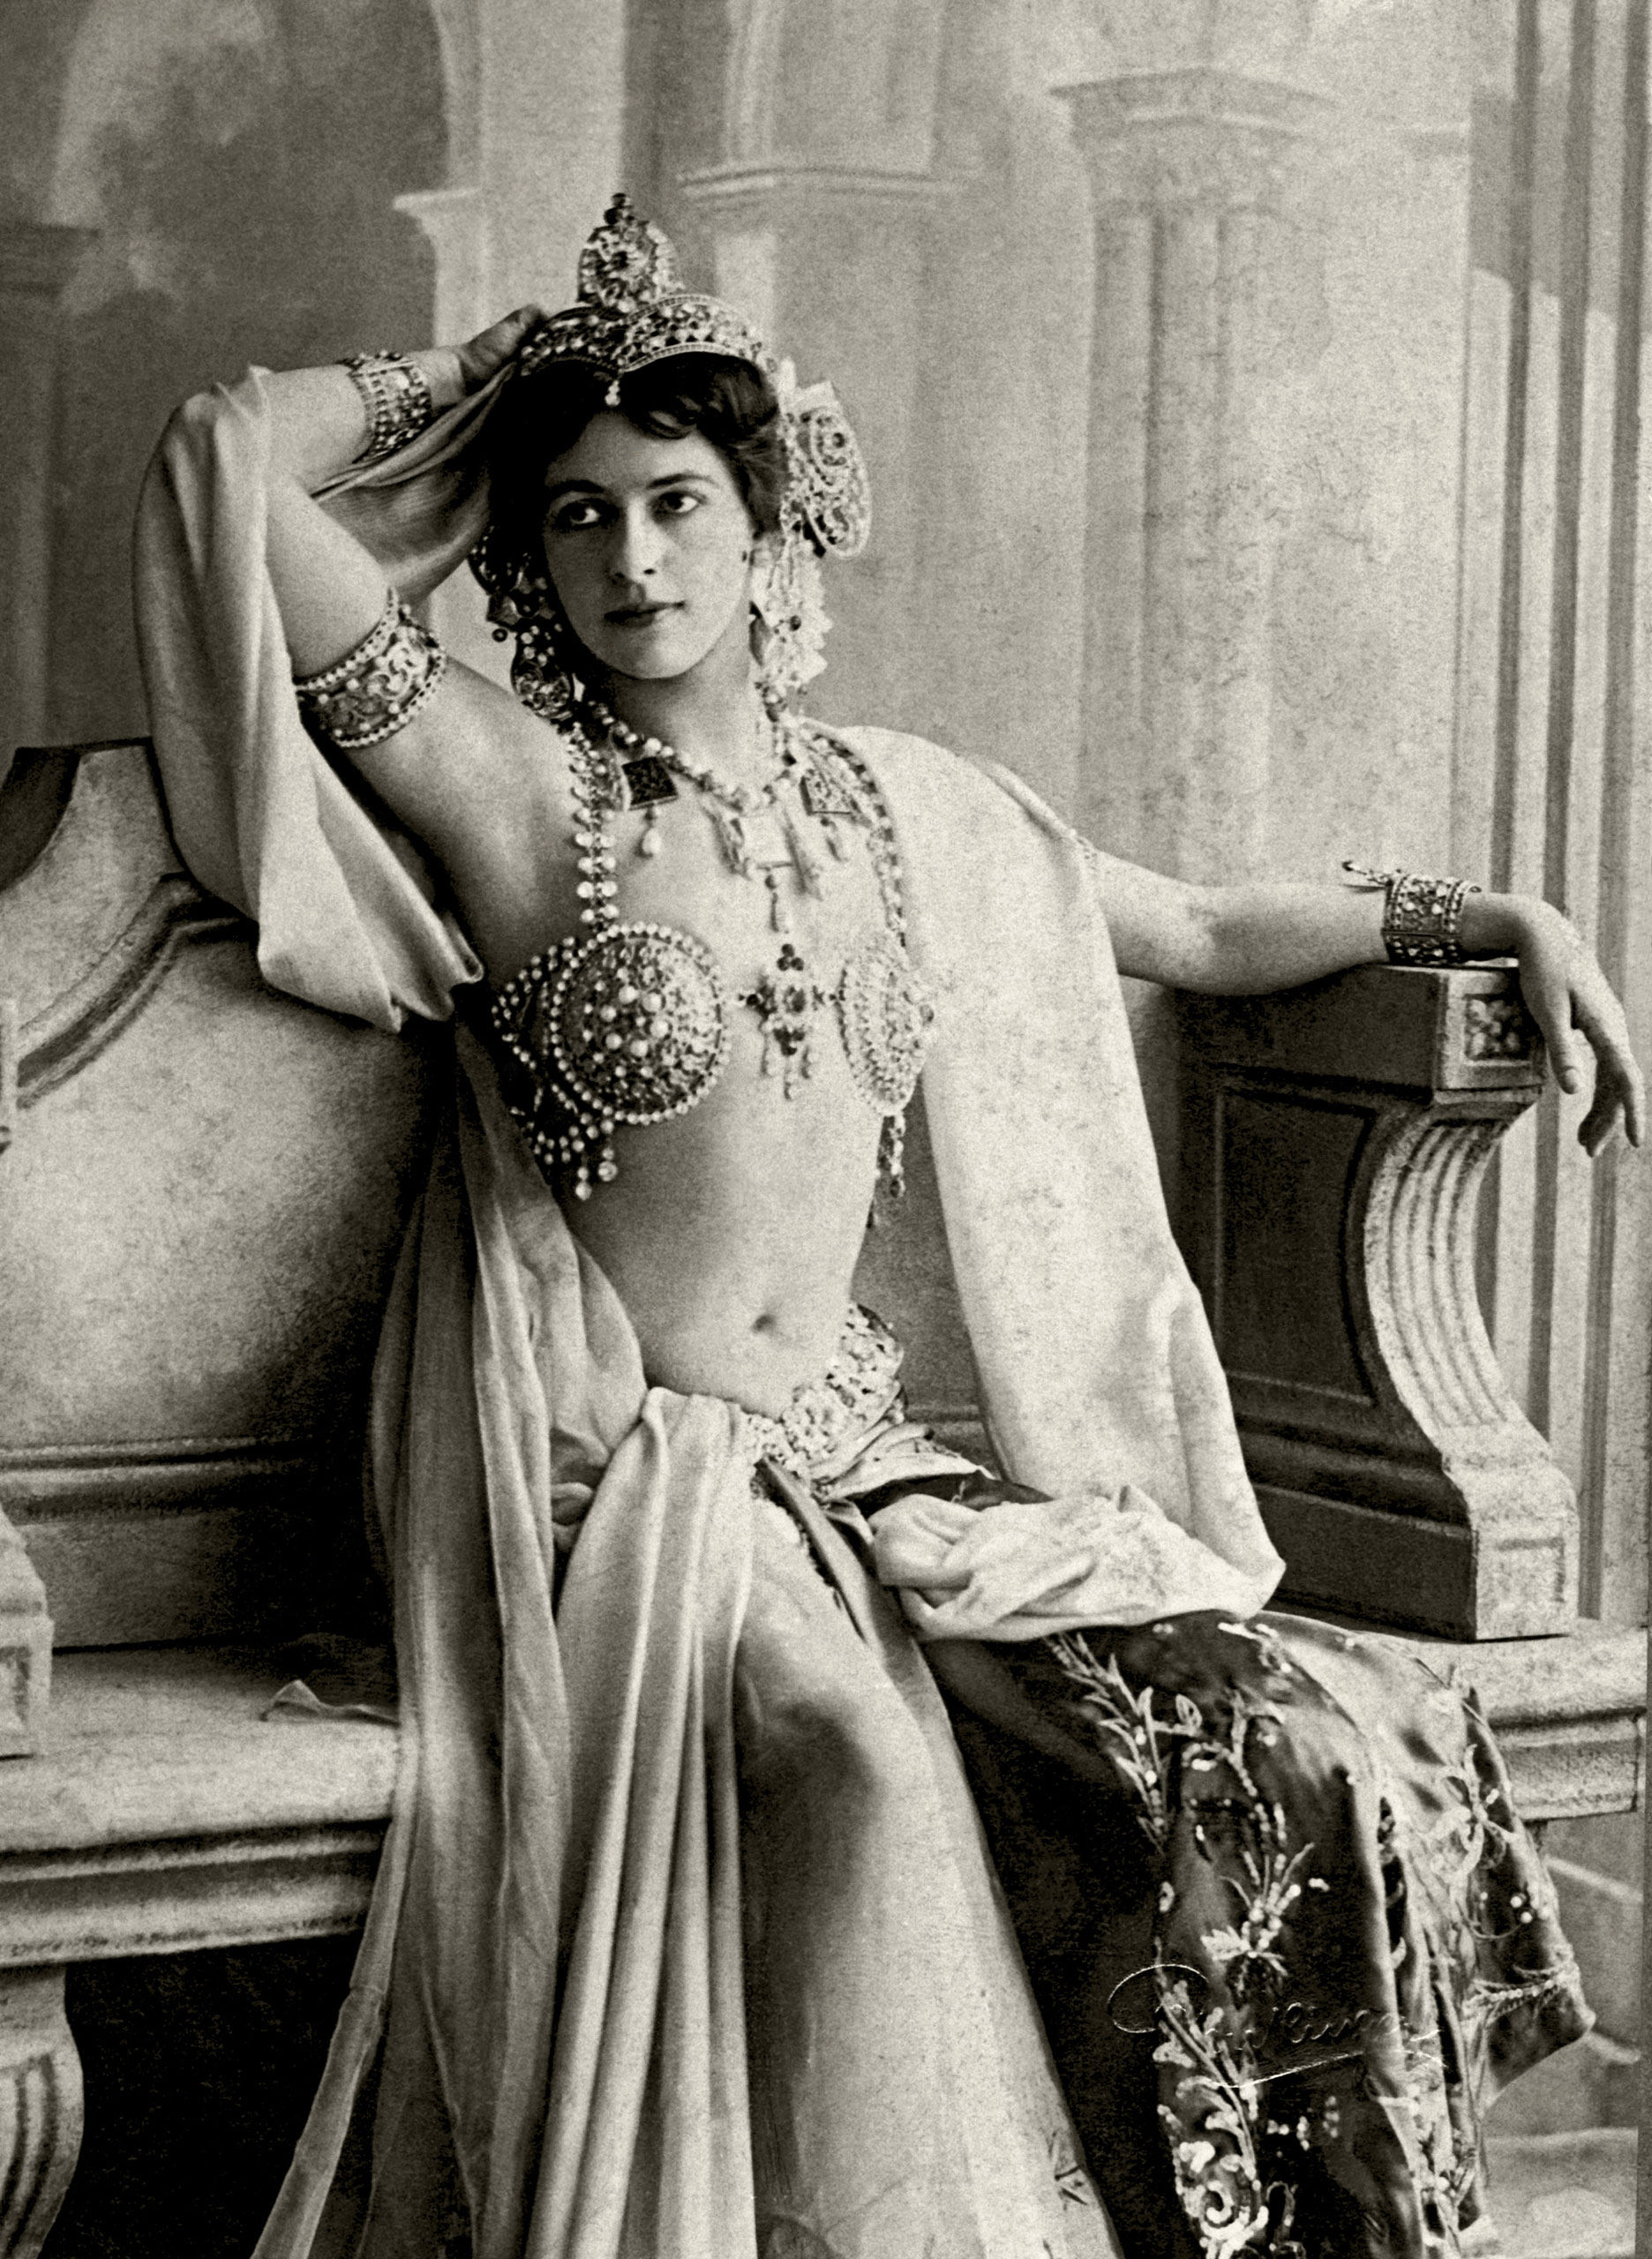 <strong>Mata Hari's Bejeweled Bra                                   </strong>                                    The famed exotic dancer and convicted spy was notorious for stripping down but never removing her jeweled metallic bra. It was said that she was self-conscious about her small breast size.